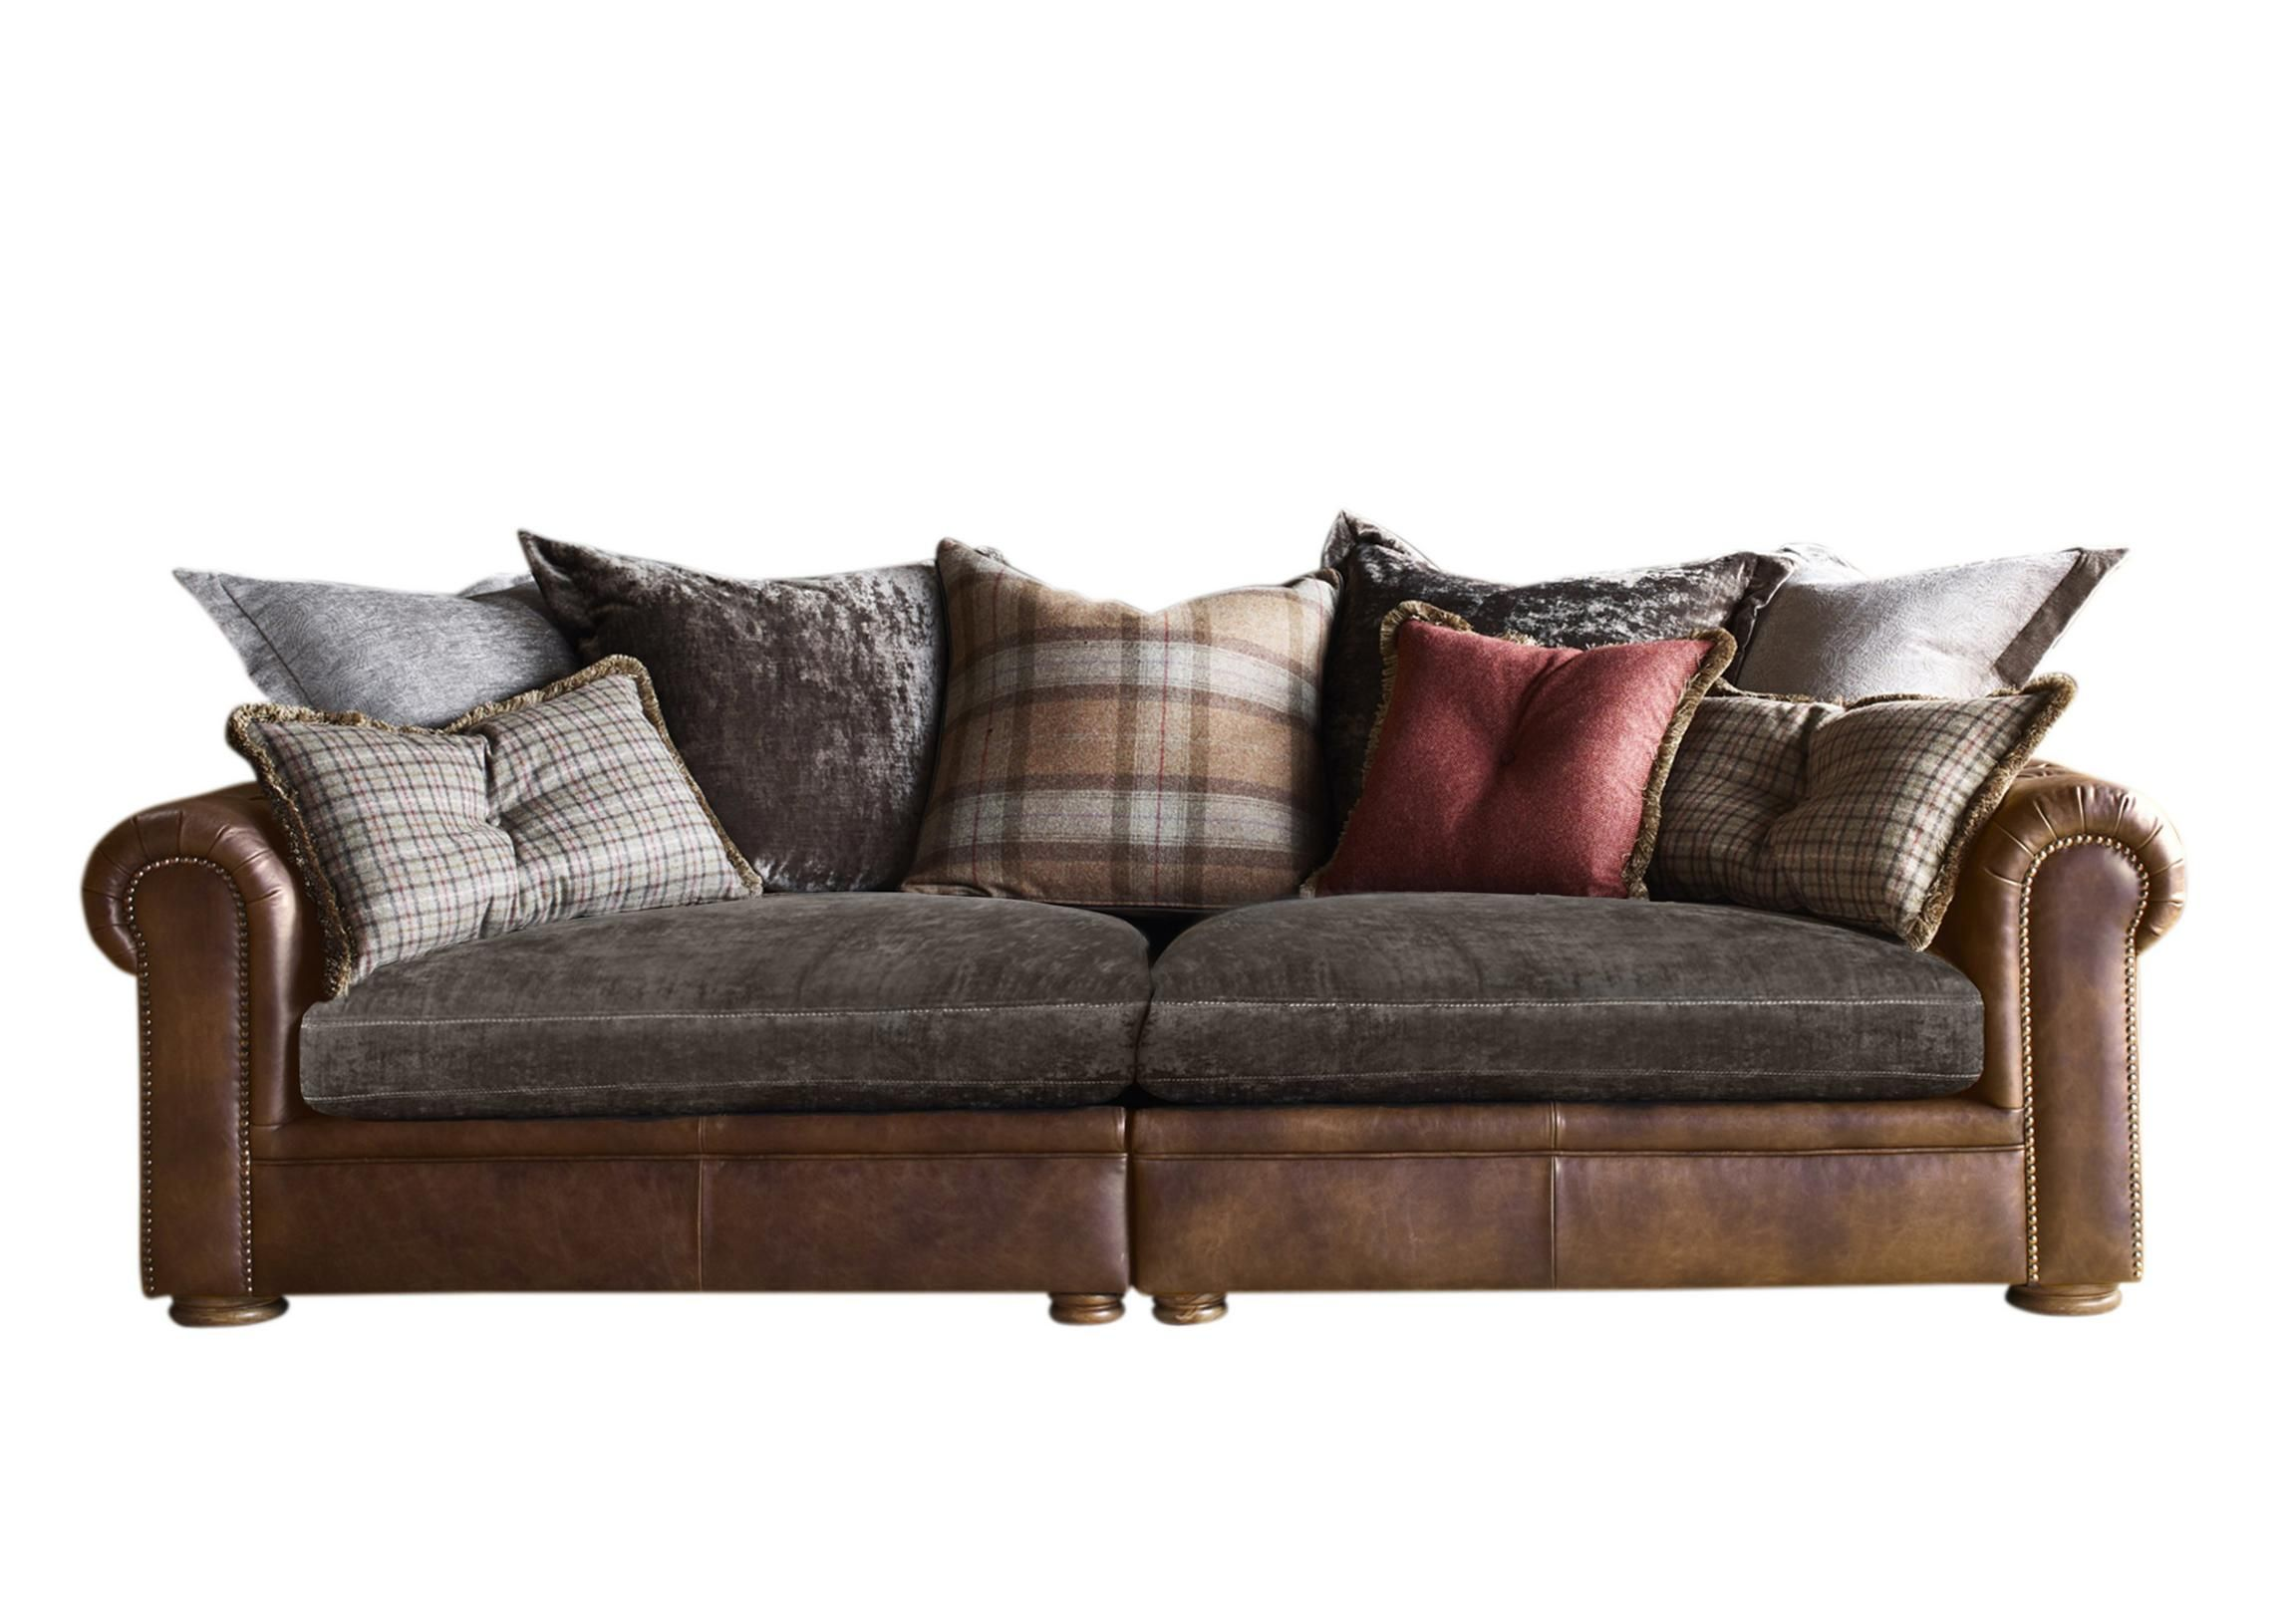 A Lovely Eclectic Mix Of Leather Upholstery And Fabric Cushions Make This Large 4 Seater Split Scatter Back Sofa So Charmin Cushions On Sofa Pillows Sofa Frame